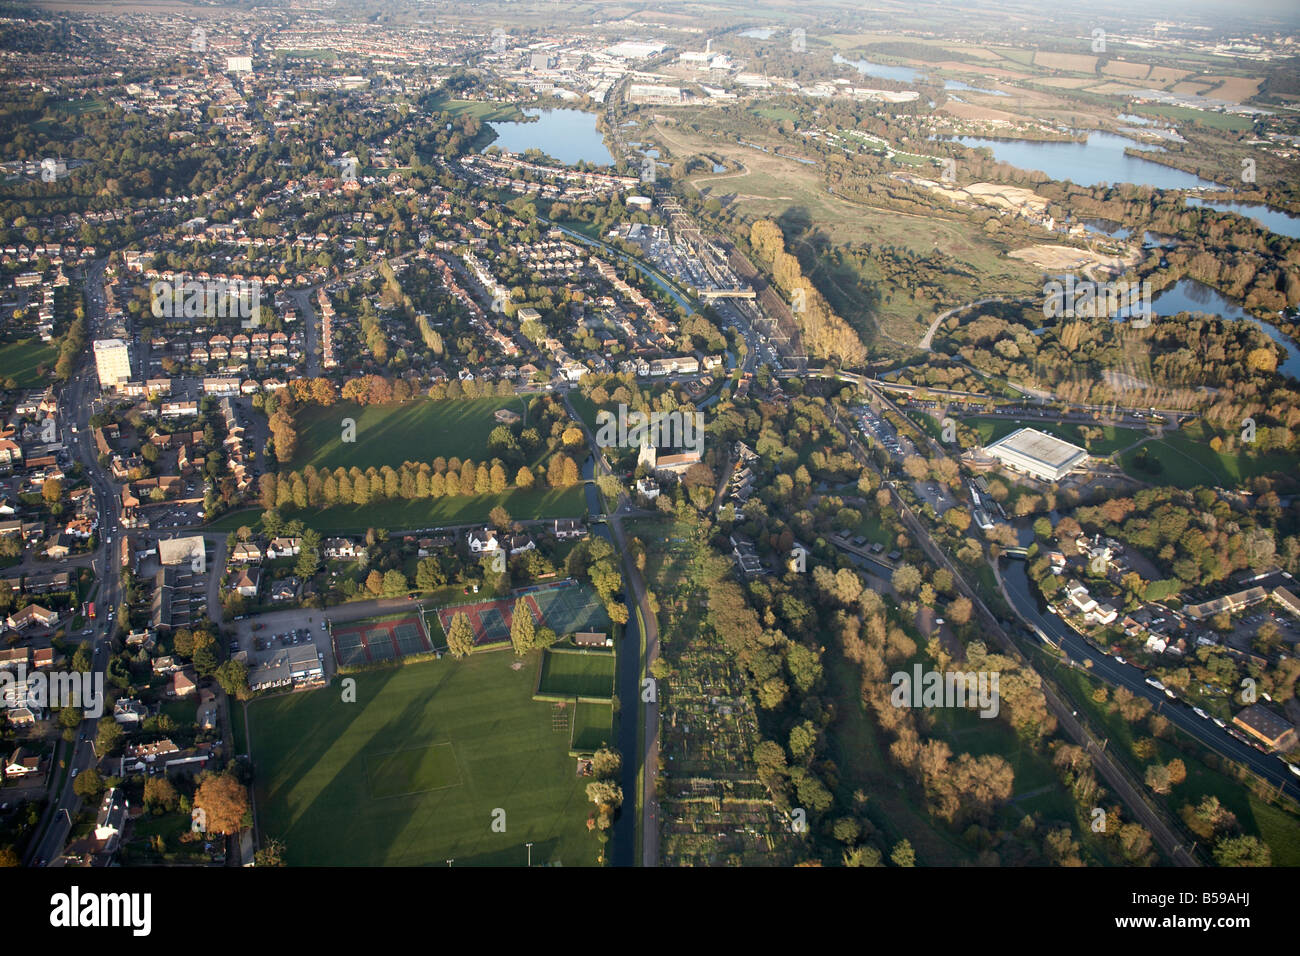 Aerial view north east of Lee Valley Park Admirals Walk Lake Slurry Pit suburban houses allotments sports grounds - Stock Image